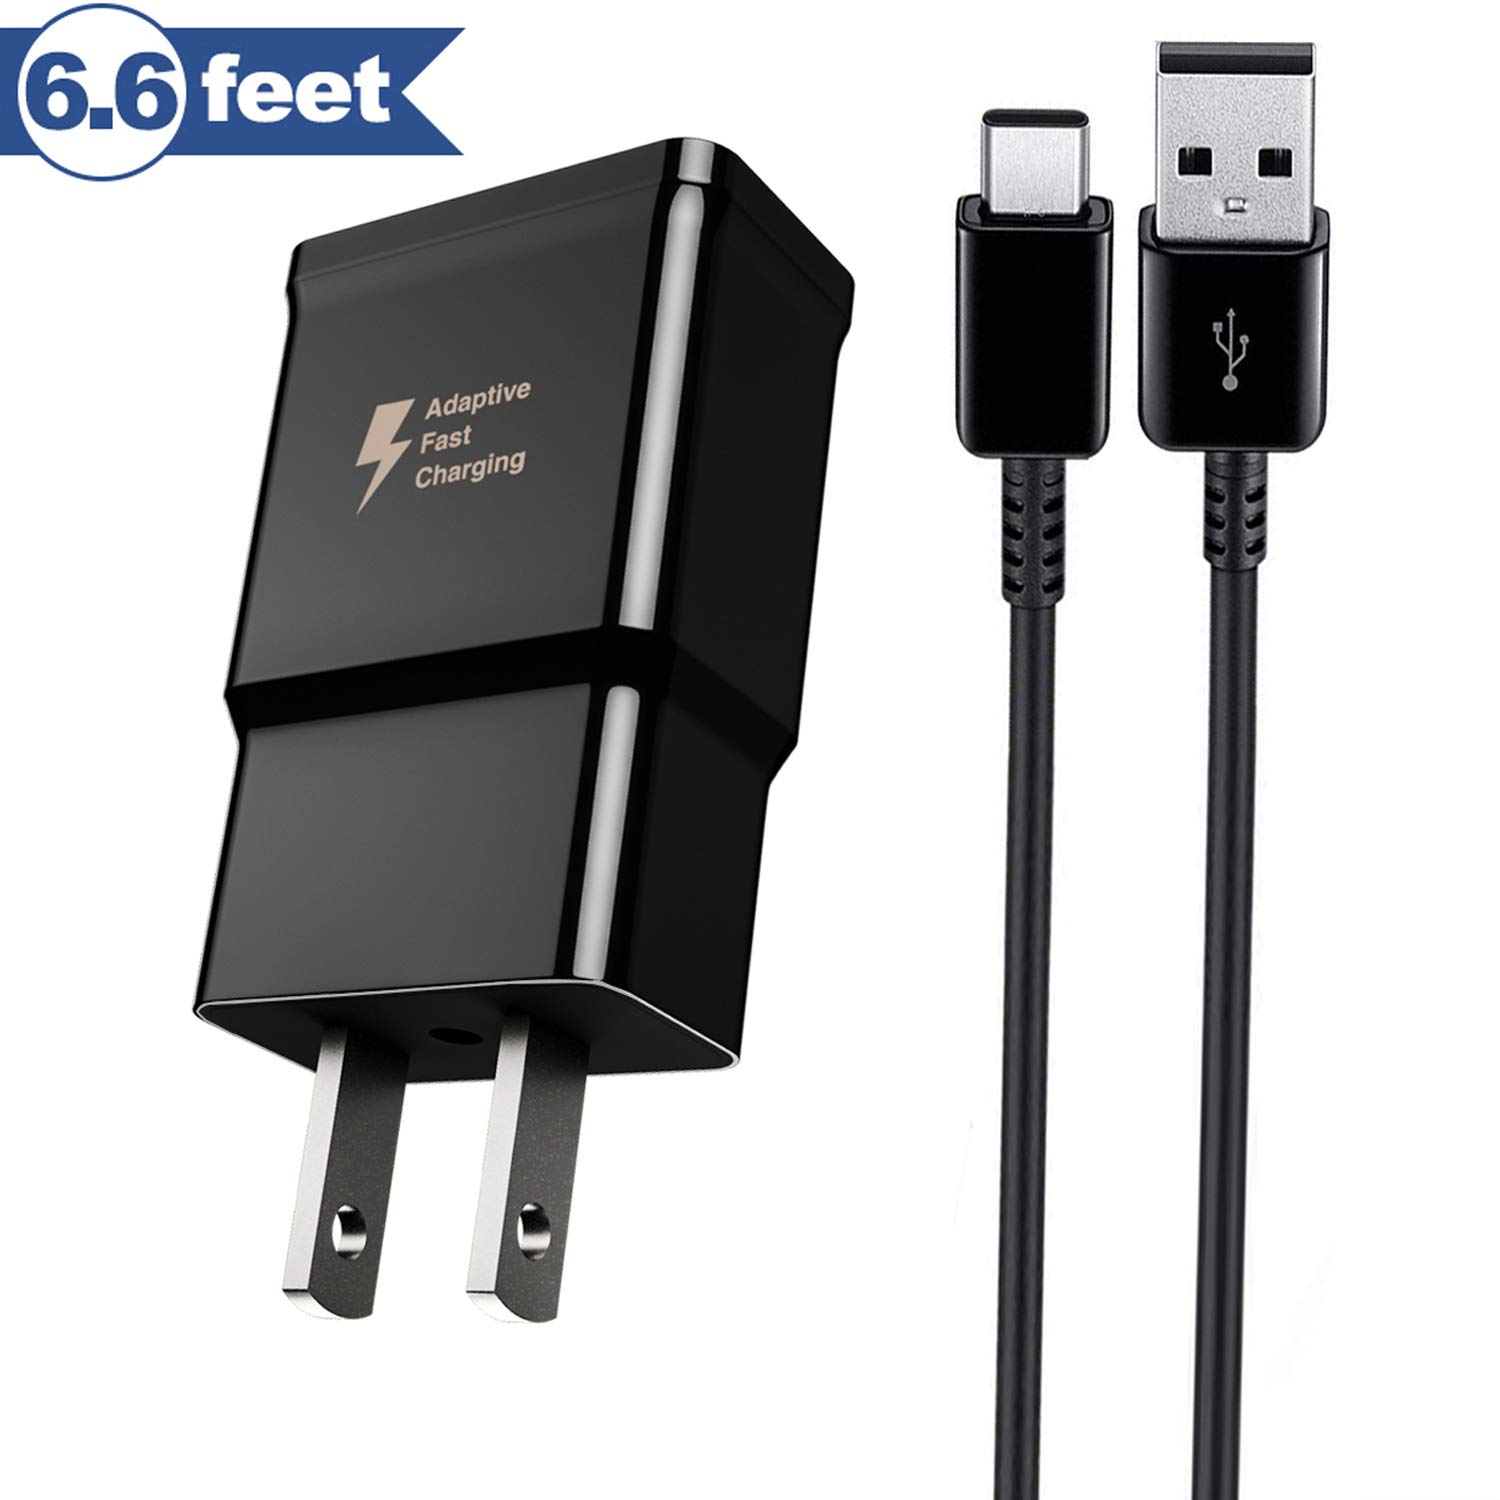 Baoota Quick Charge 3.0,USB Type-C Cable with Adaptive Fast Wall Charger Compatible for Samsung Galaxy S8 S8 Plus S9 S9 Plus,LG G6 G5 V30 V20, Google Pixel 2 Nexus 5X 6p by Baoota